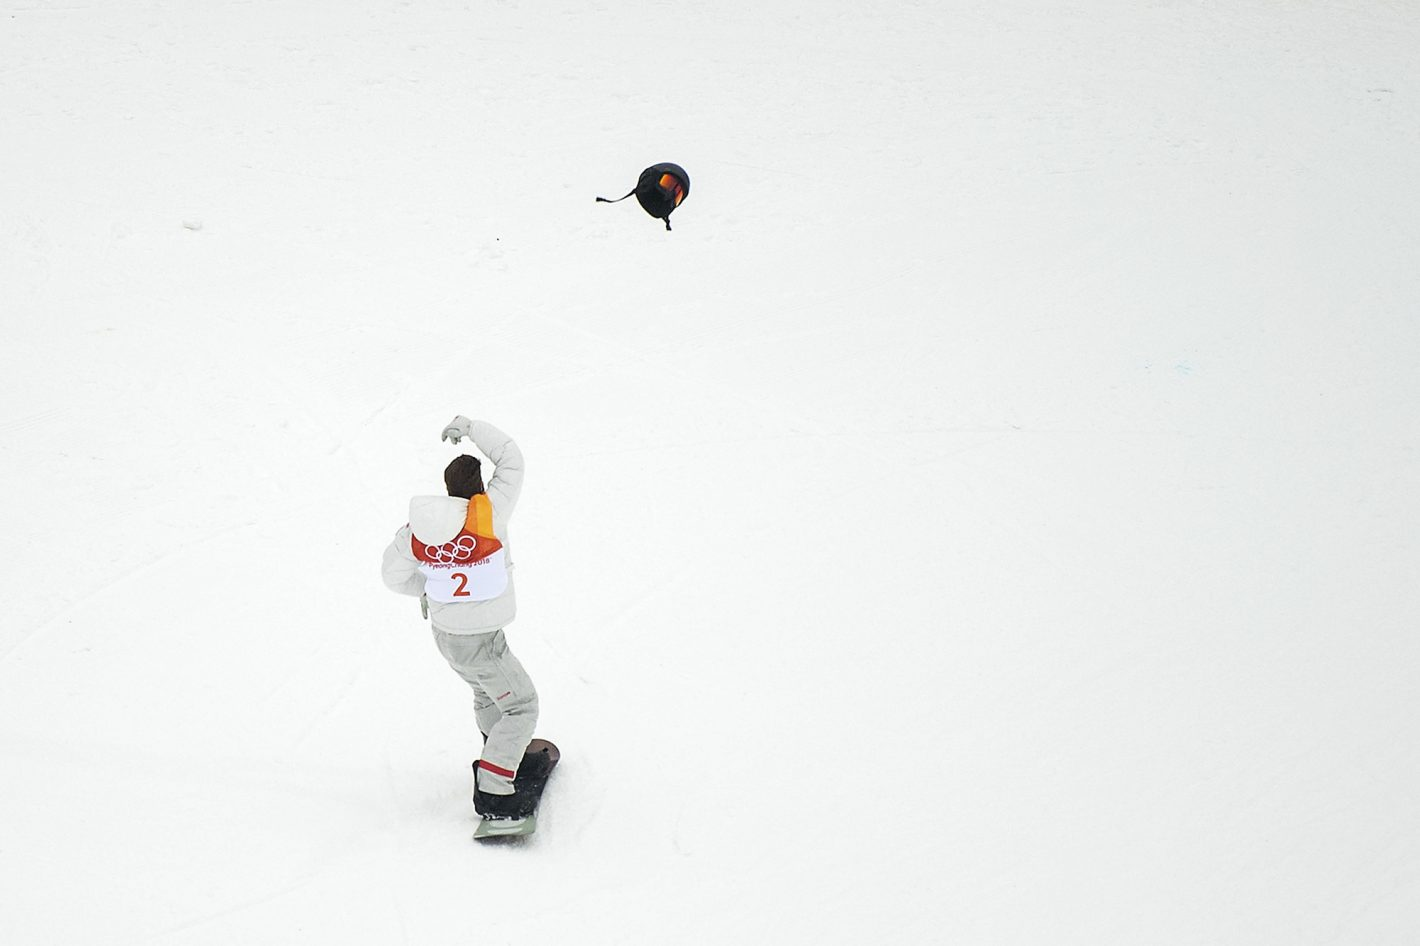 Gold medallist Shaun White of the United States throws his helmet as he celebrates after his first round during Snowboard Men's Halfpipe Final on day five of the Pyeongchang 2018 Winter Olympics at Phoenix Snow Park on February 14, 2018 in Pyeongchang-gun, South Korea. Nikon D5 | AF-S NIKKOR 70-200mm f/2.8E FL ED VR @200mm | 1/2000s | F2.8 Photo by David Ramos/Getty Images